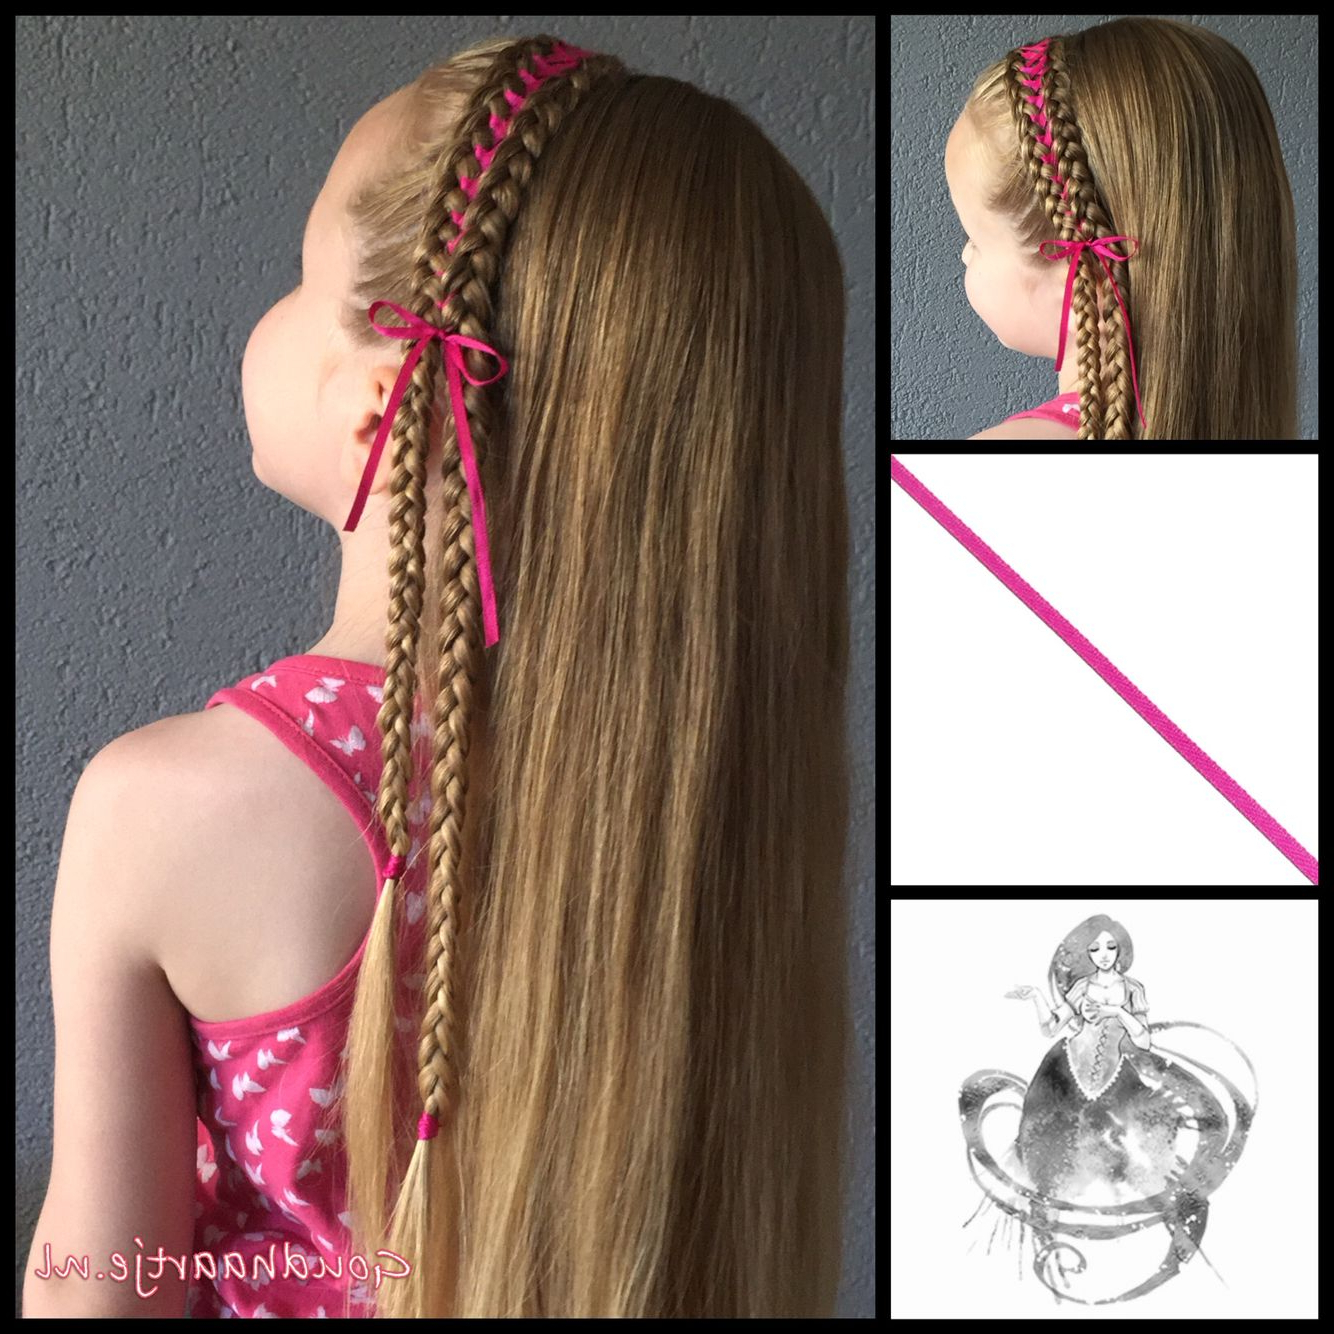 Widely Used Corset Braided Hairstyles Intended For Headband Corset Braid With A Small Ribbon From The Webshop (View 17 of 20)